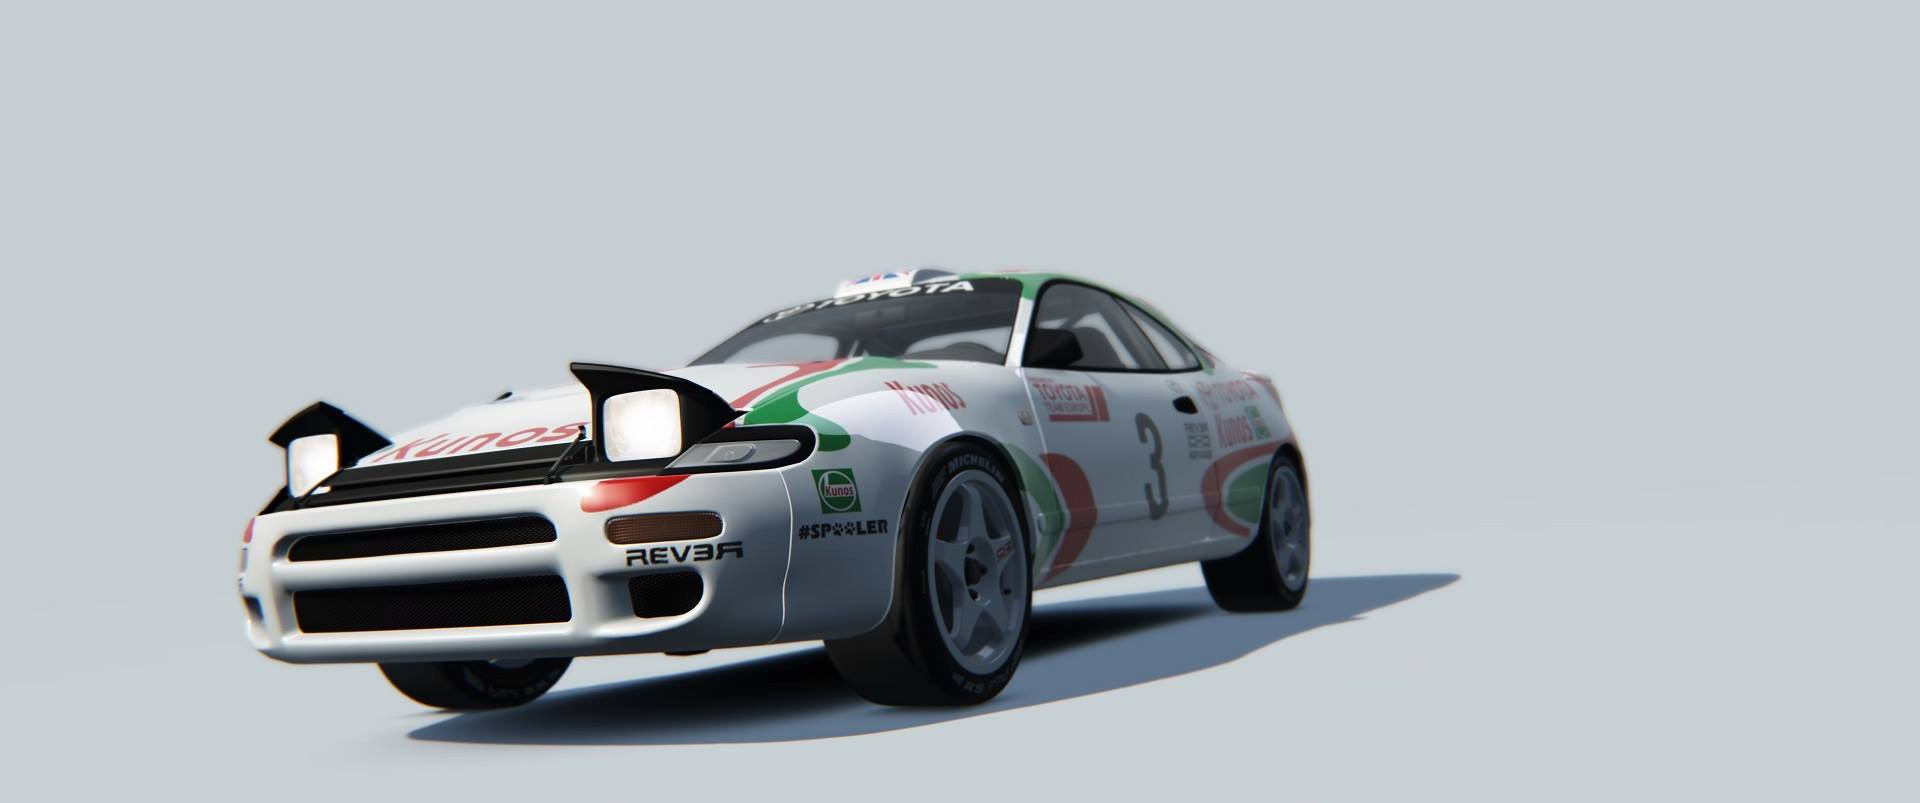 Assetto Corsa Preview